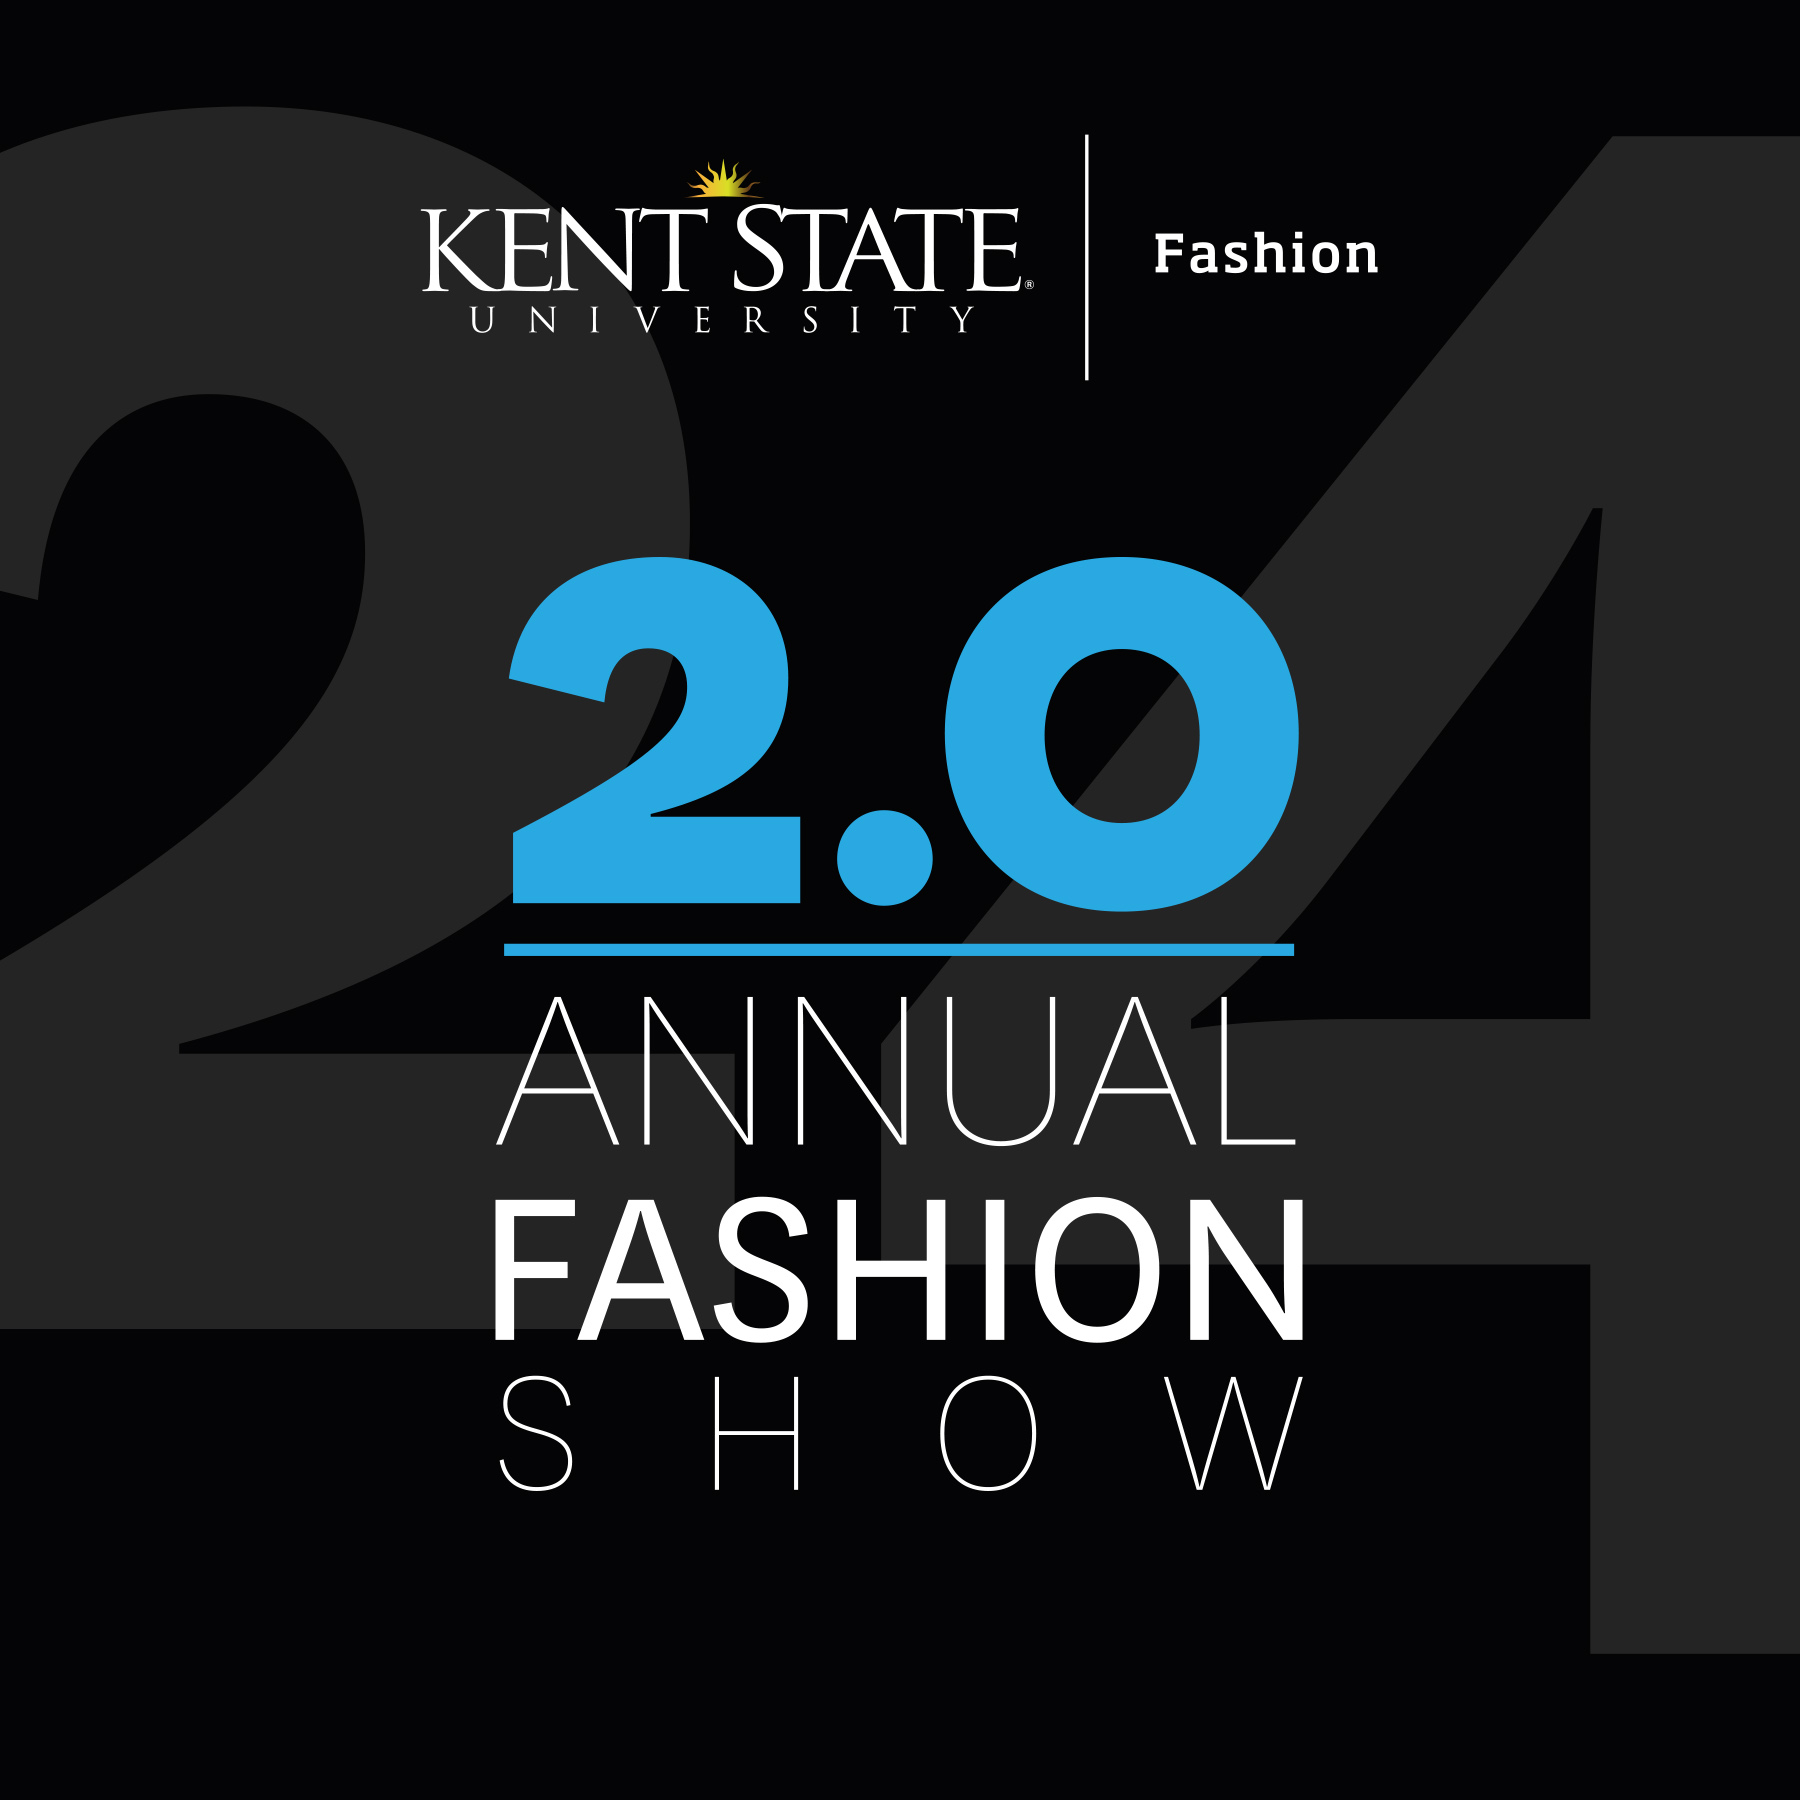 Kent State Fashion Annual Fashion Show 2.0 April 24, 2020